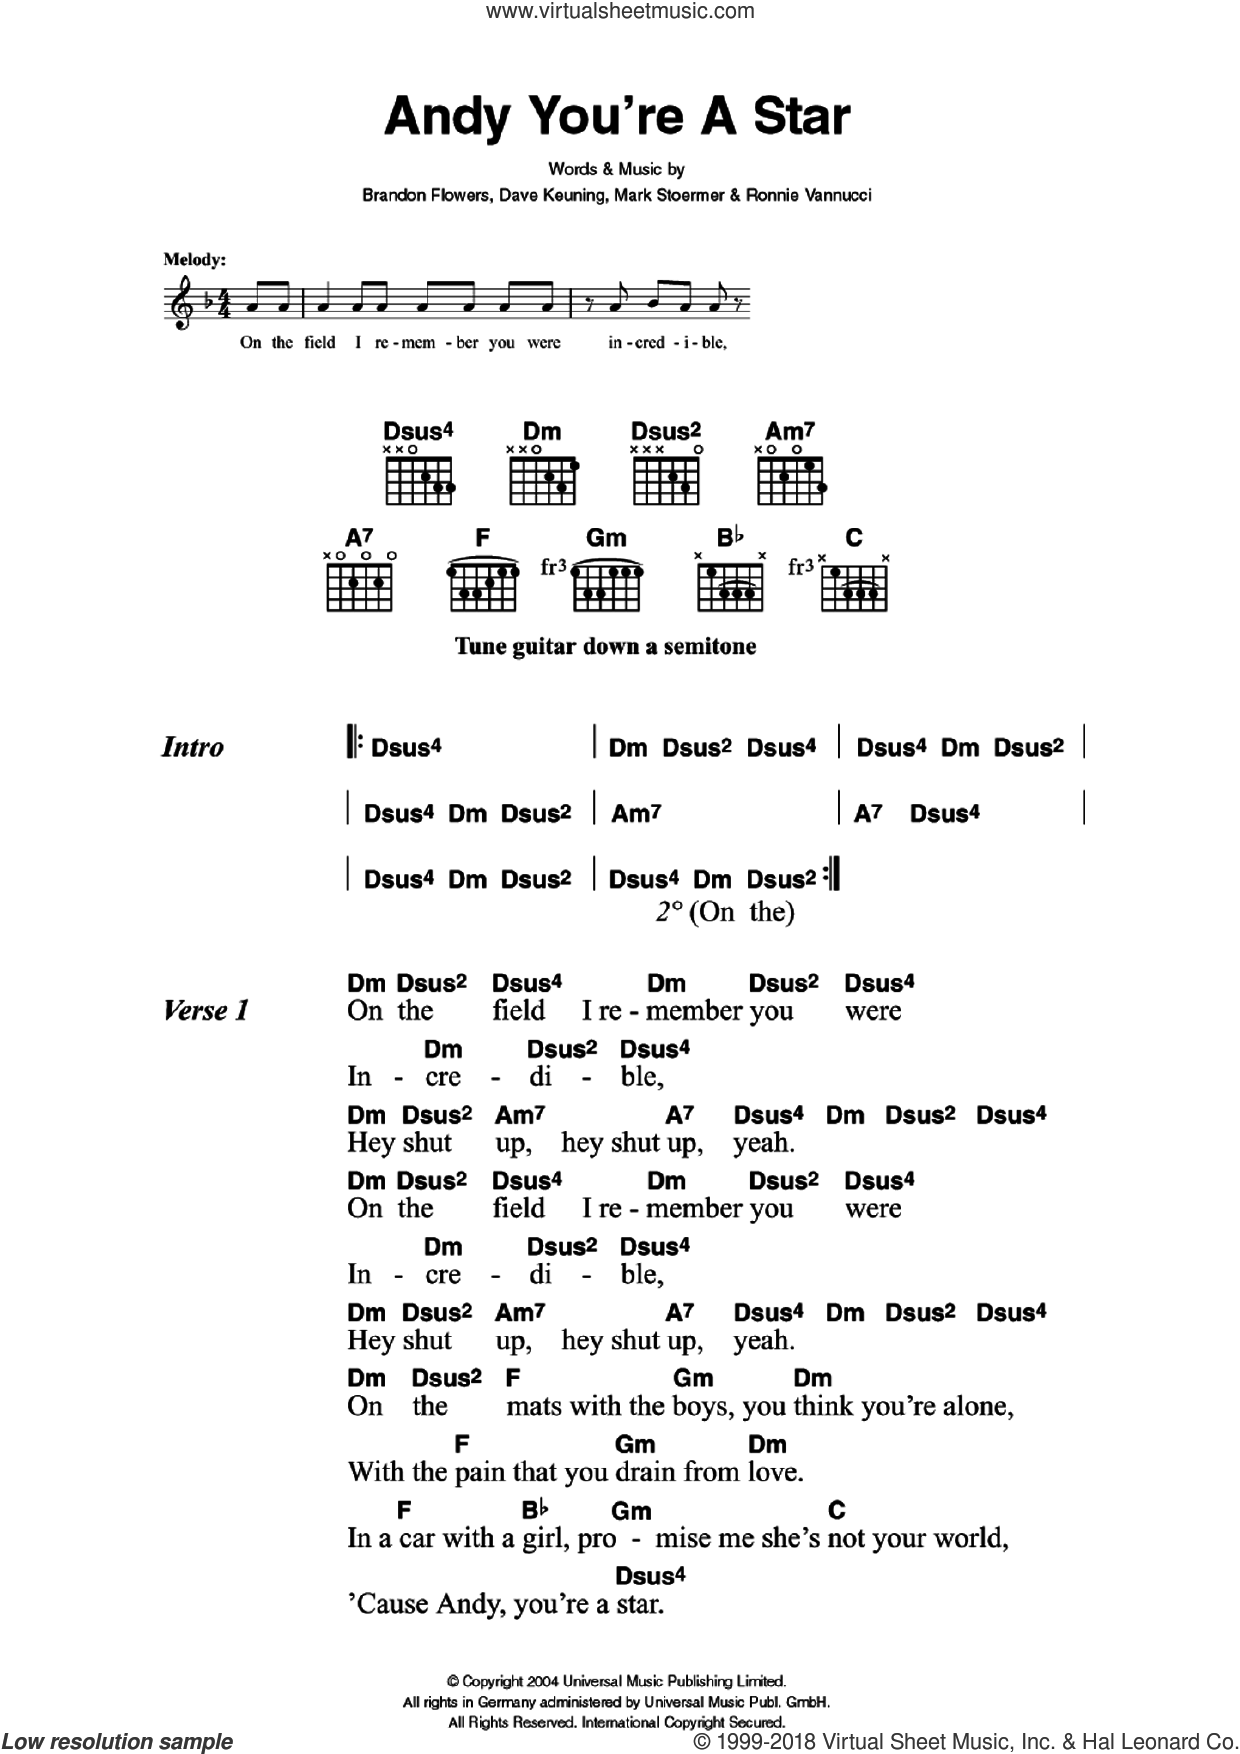 Andy You're A Star sheet music for guitar (chords) by The Killers, Brandon Flowers, Dave Keuning, Mark Stoermer and Ronnie Vannucci, intermediate skill level